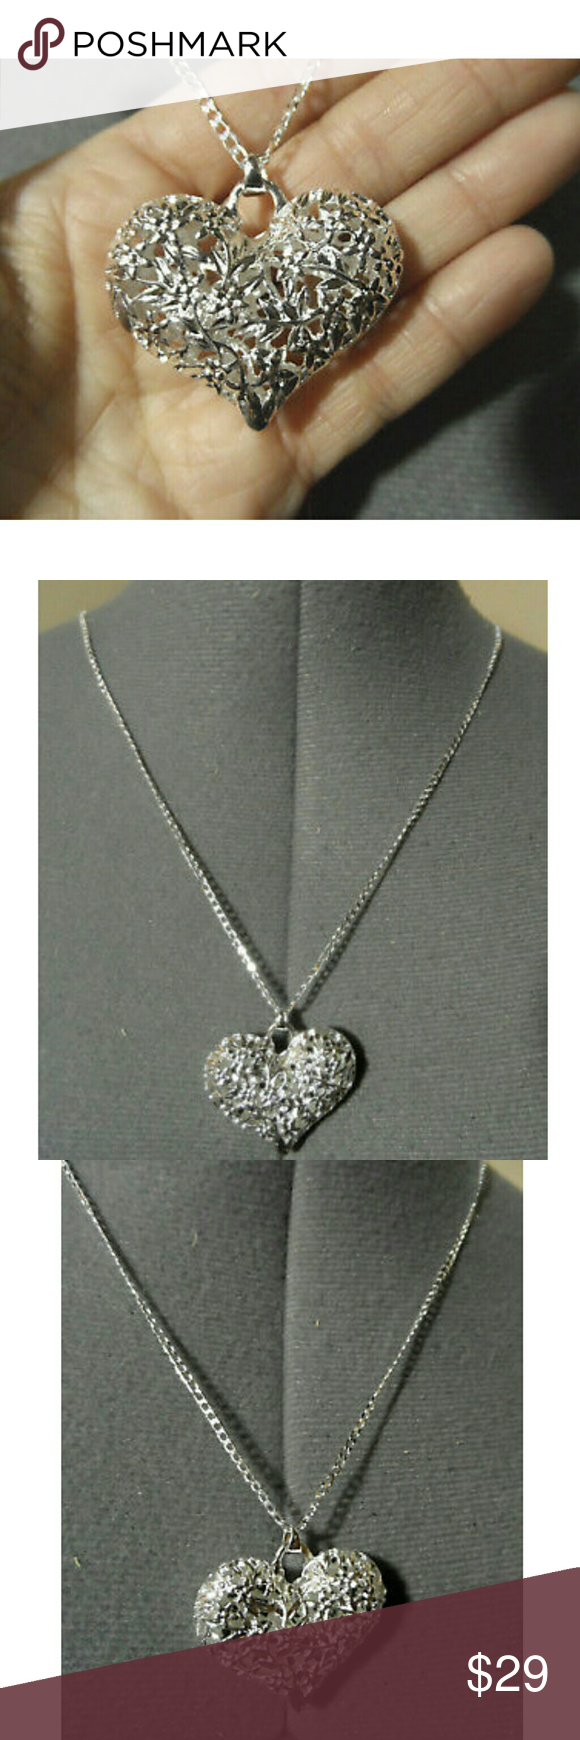 New filigree puffy heart silver necklace u pendant boutique silver